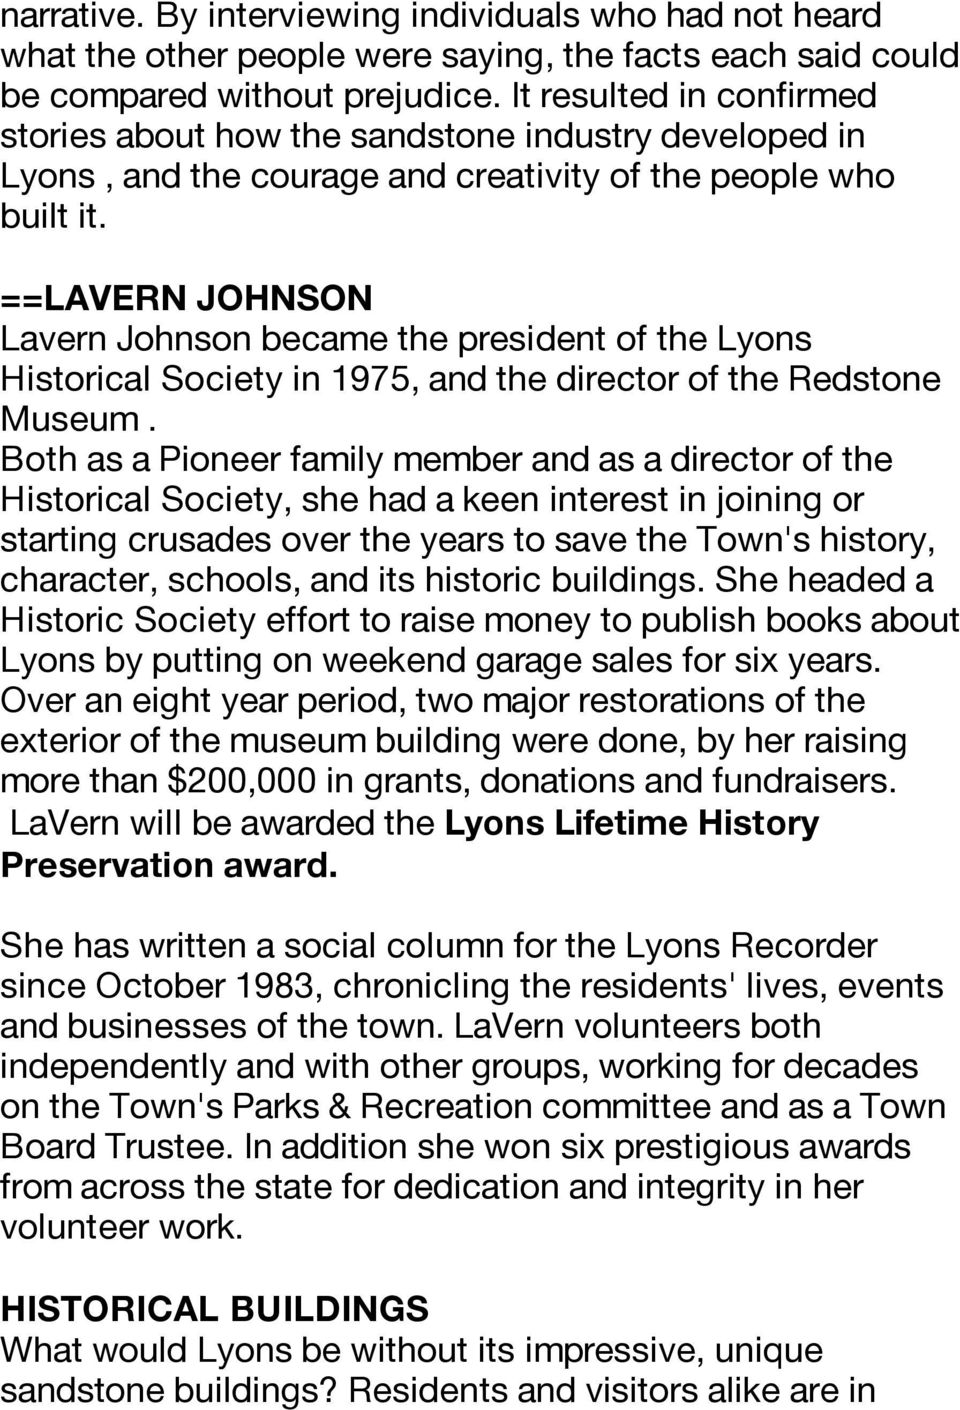 ==LAVERN JOHNSON Lavern Johnson became the president of the Lyons Historical Society in 1975, and the director of the Redstone Museum.